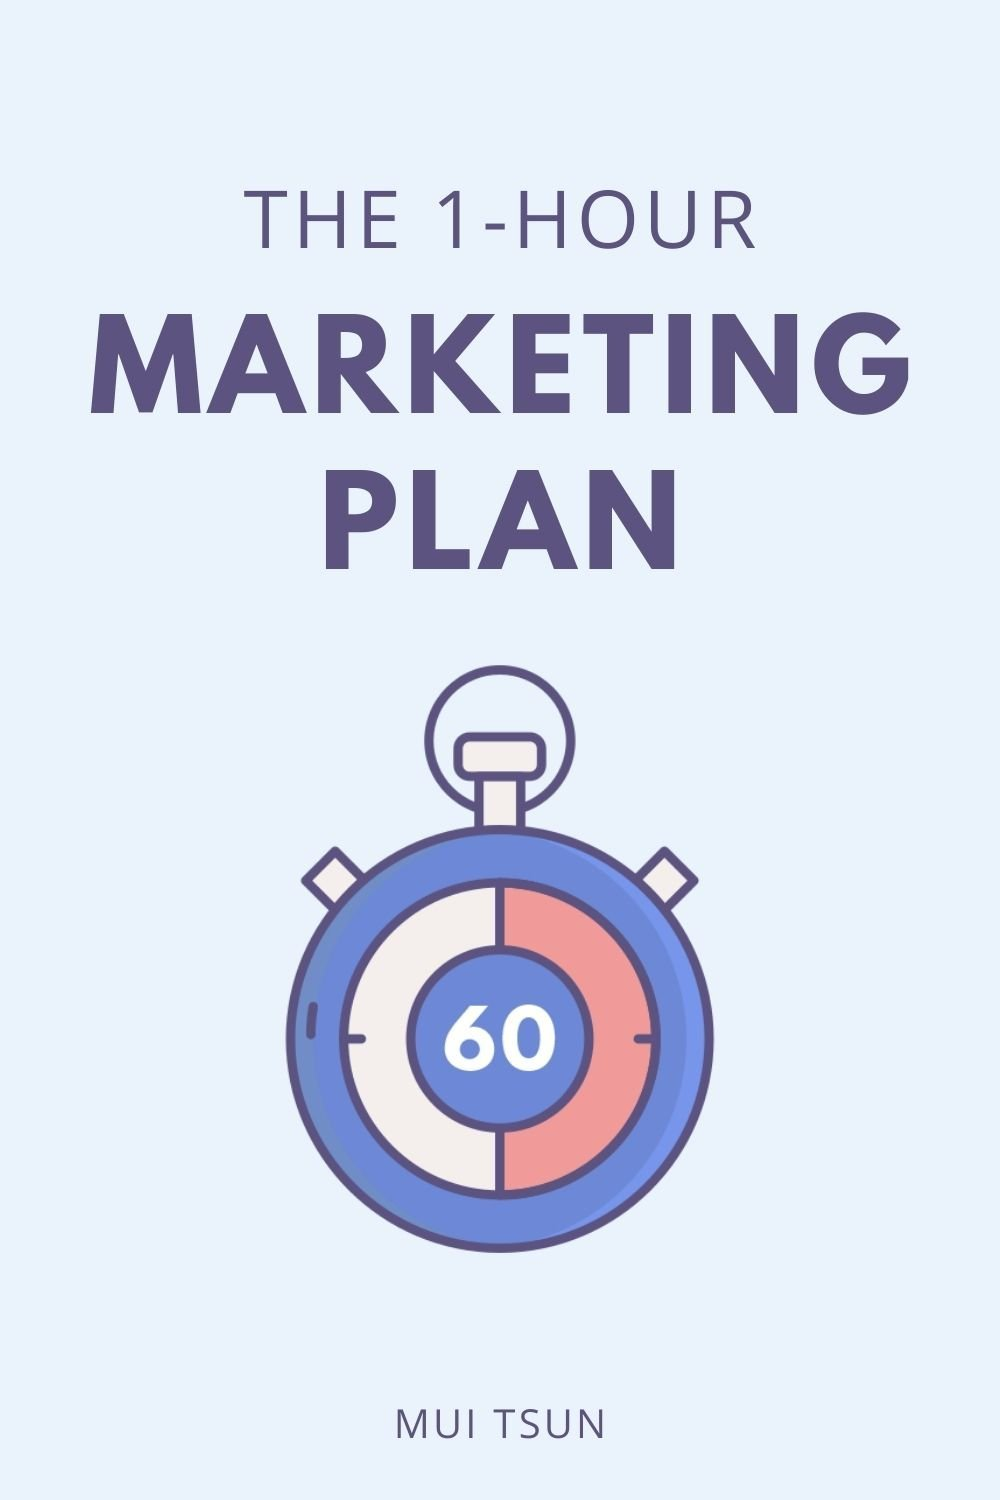 The 1-Hour Marketing Plan